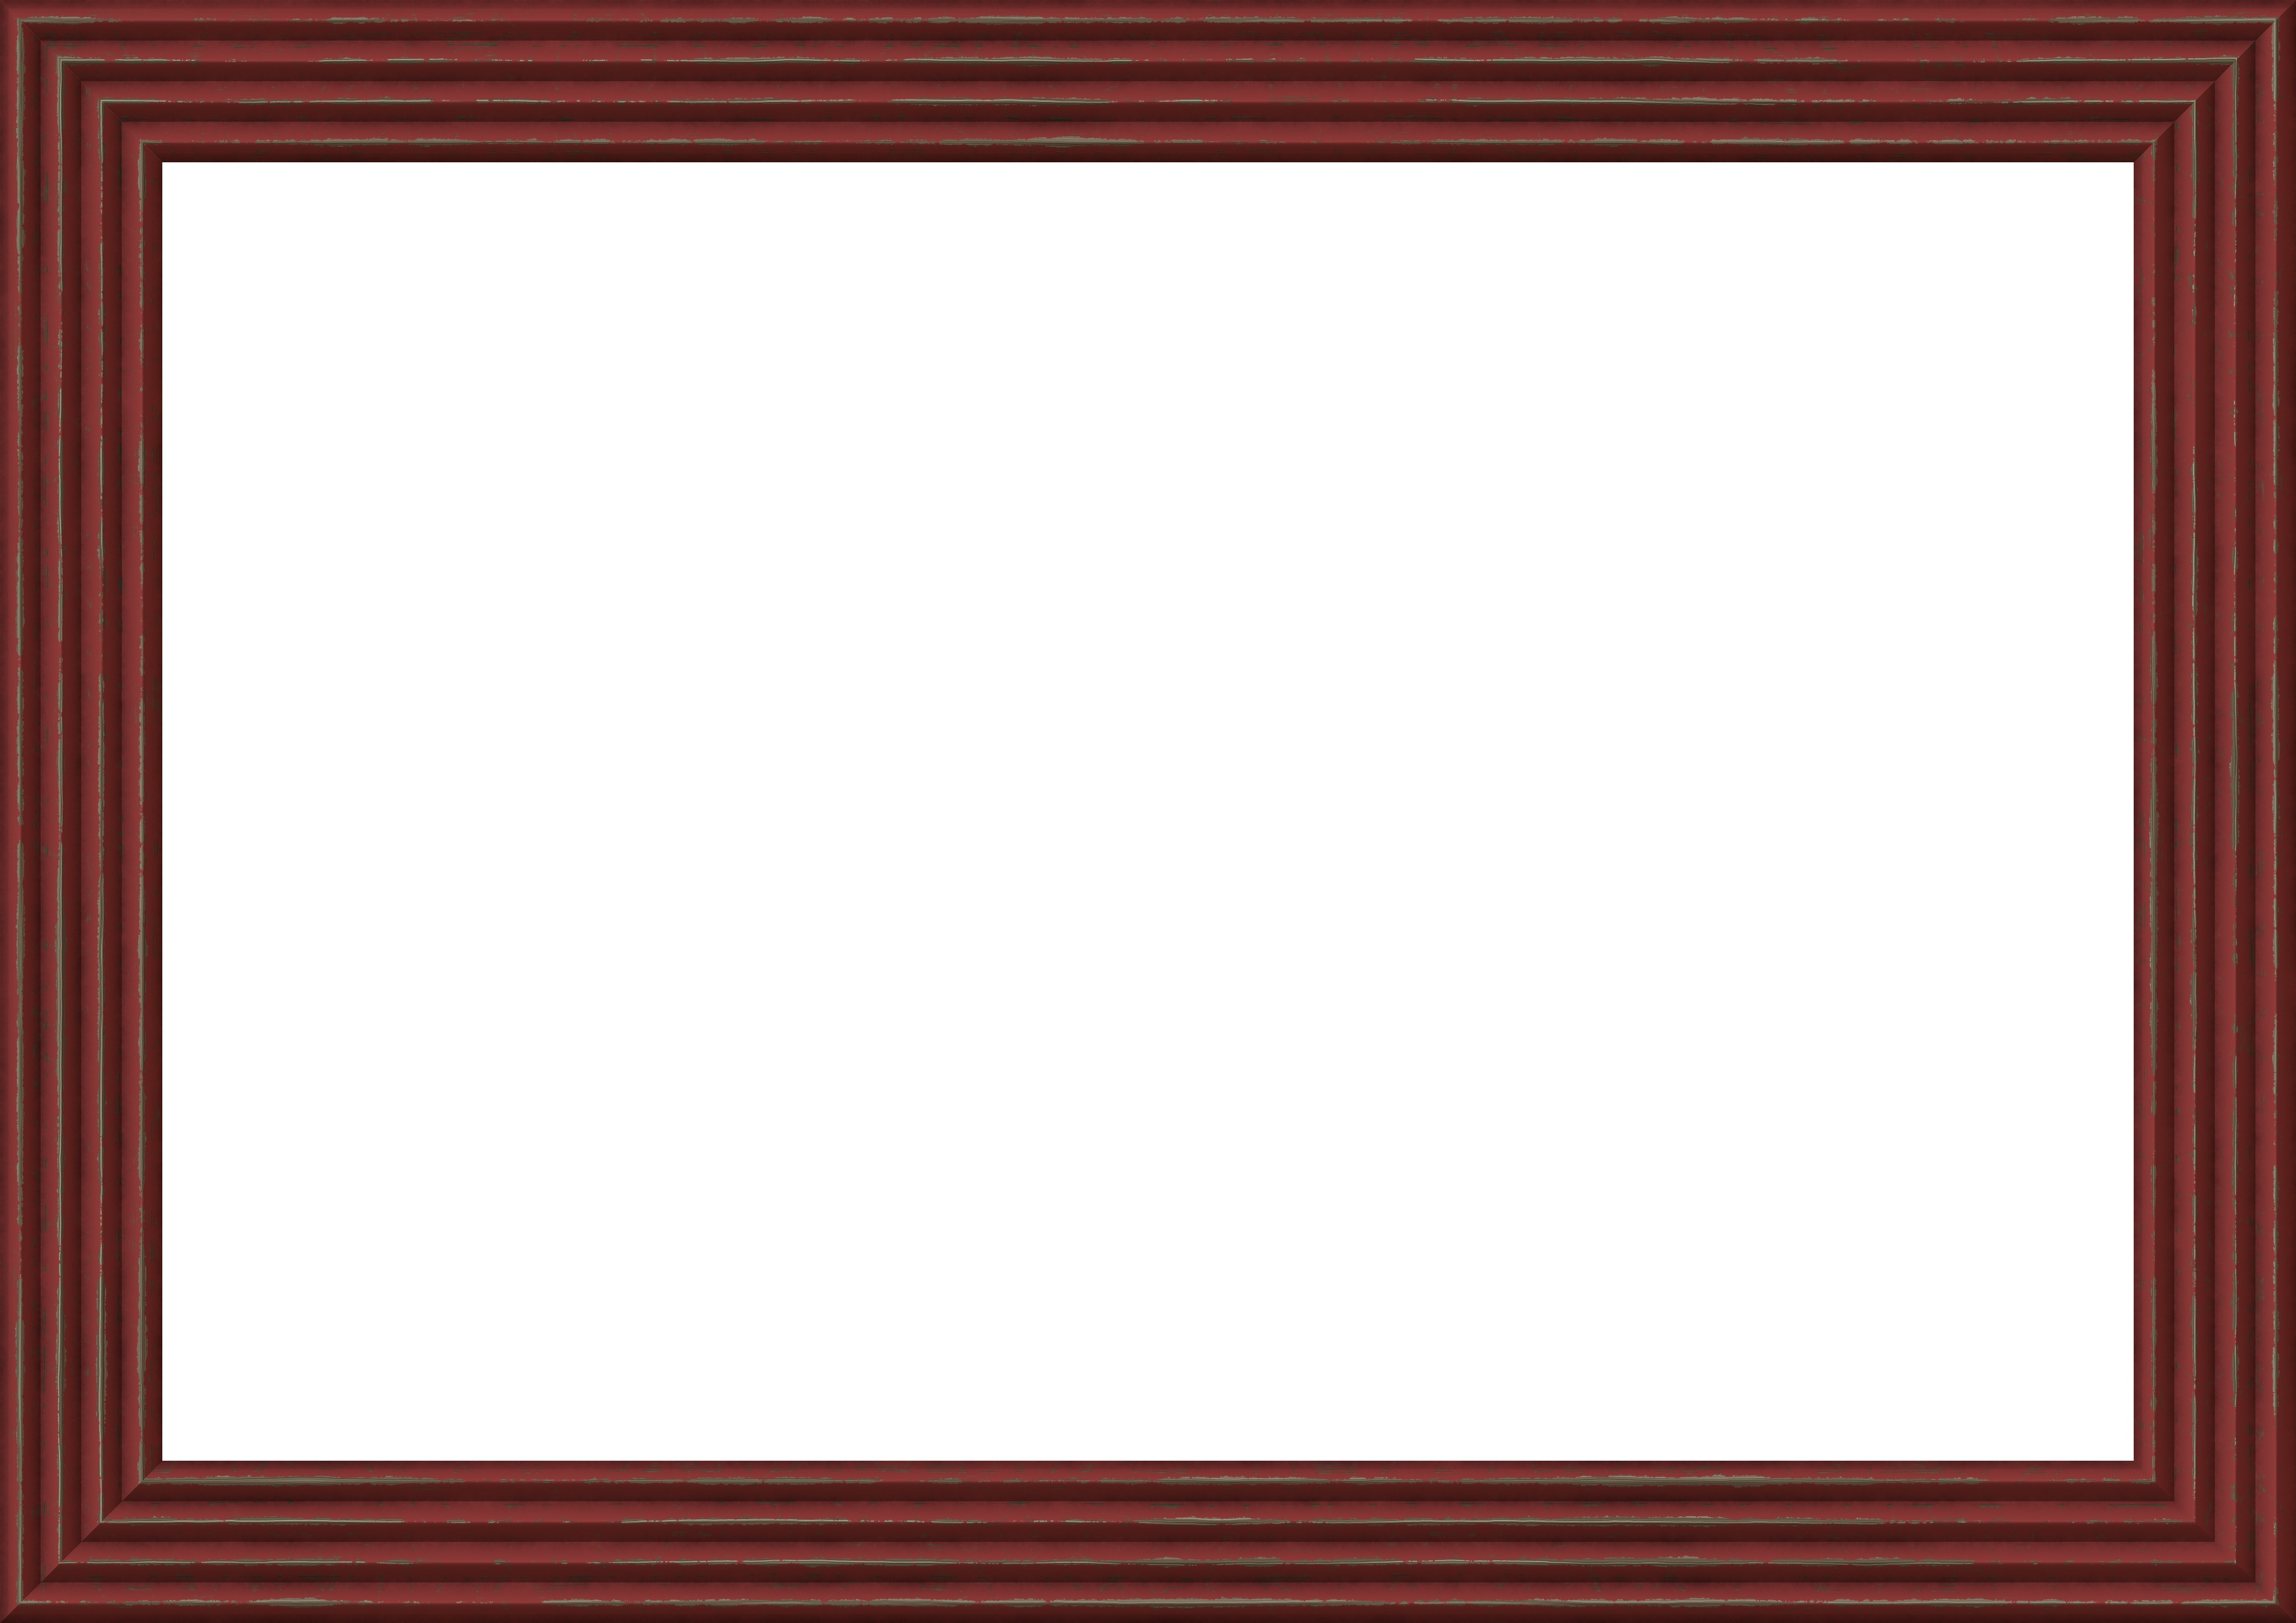 Red picture frame border - Photopublicdomain.com